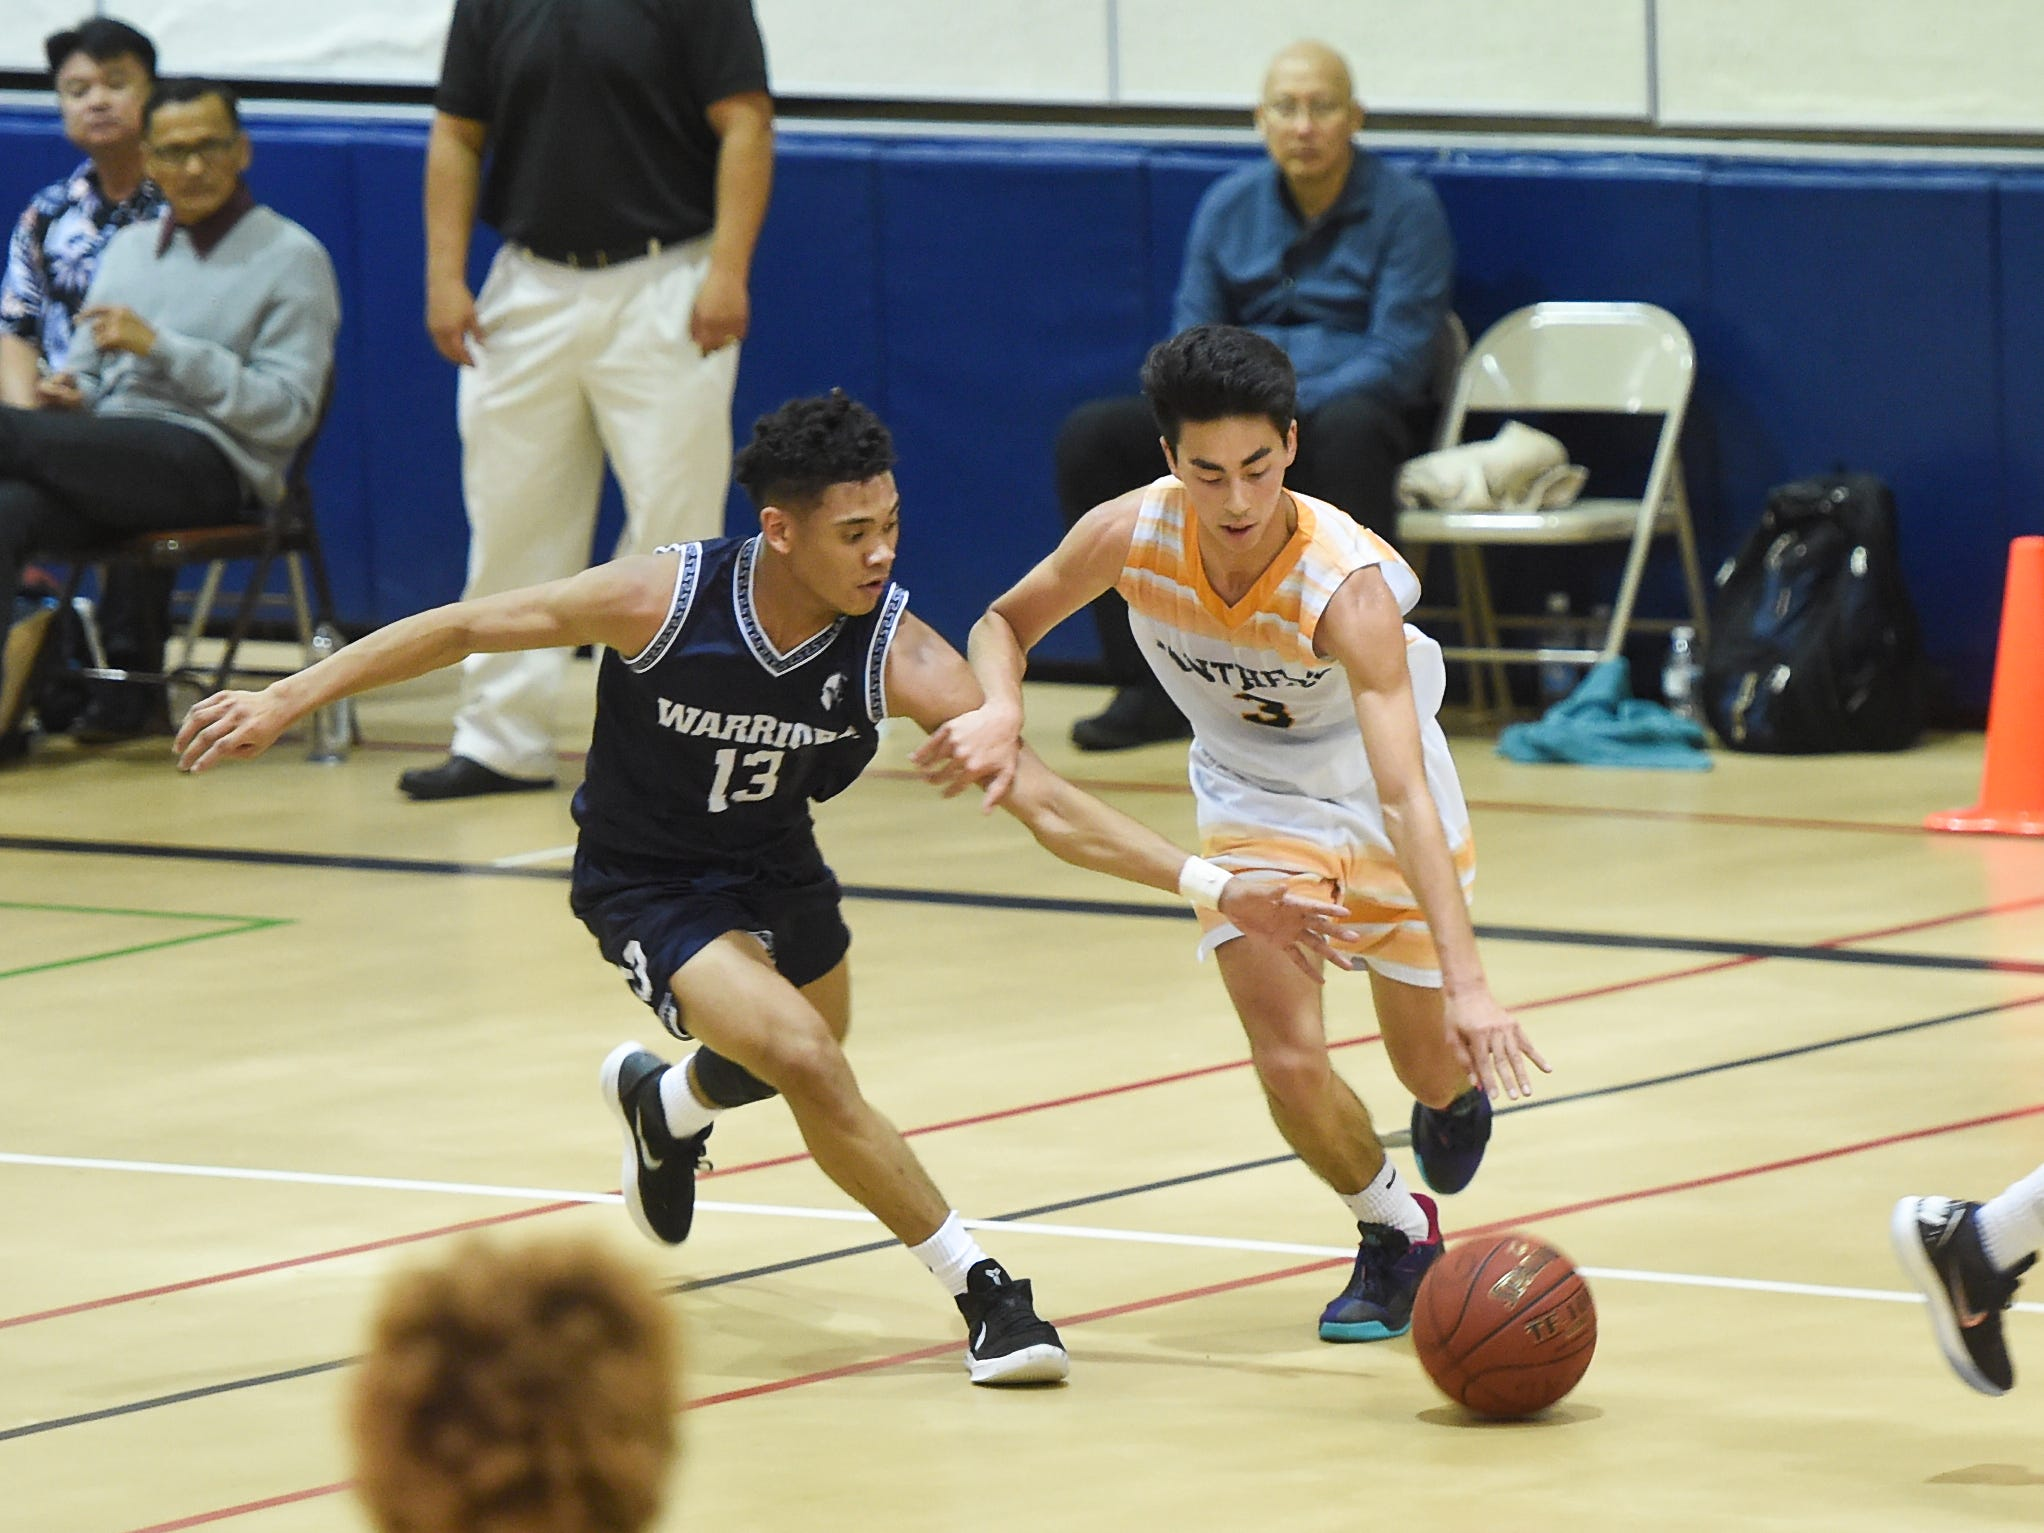 The Guam High Panthers' Akira Martines (3) protects the ball from St. Paul player Jahmar White (13) during their IIAAG Boys' Basketball game at the Guam High School Gym, Feb. 5, 2019.